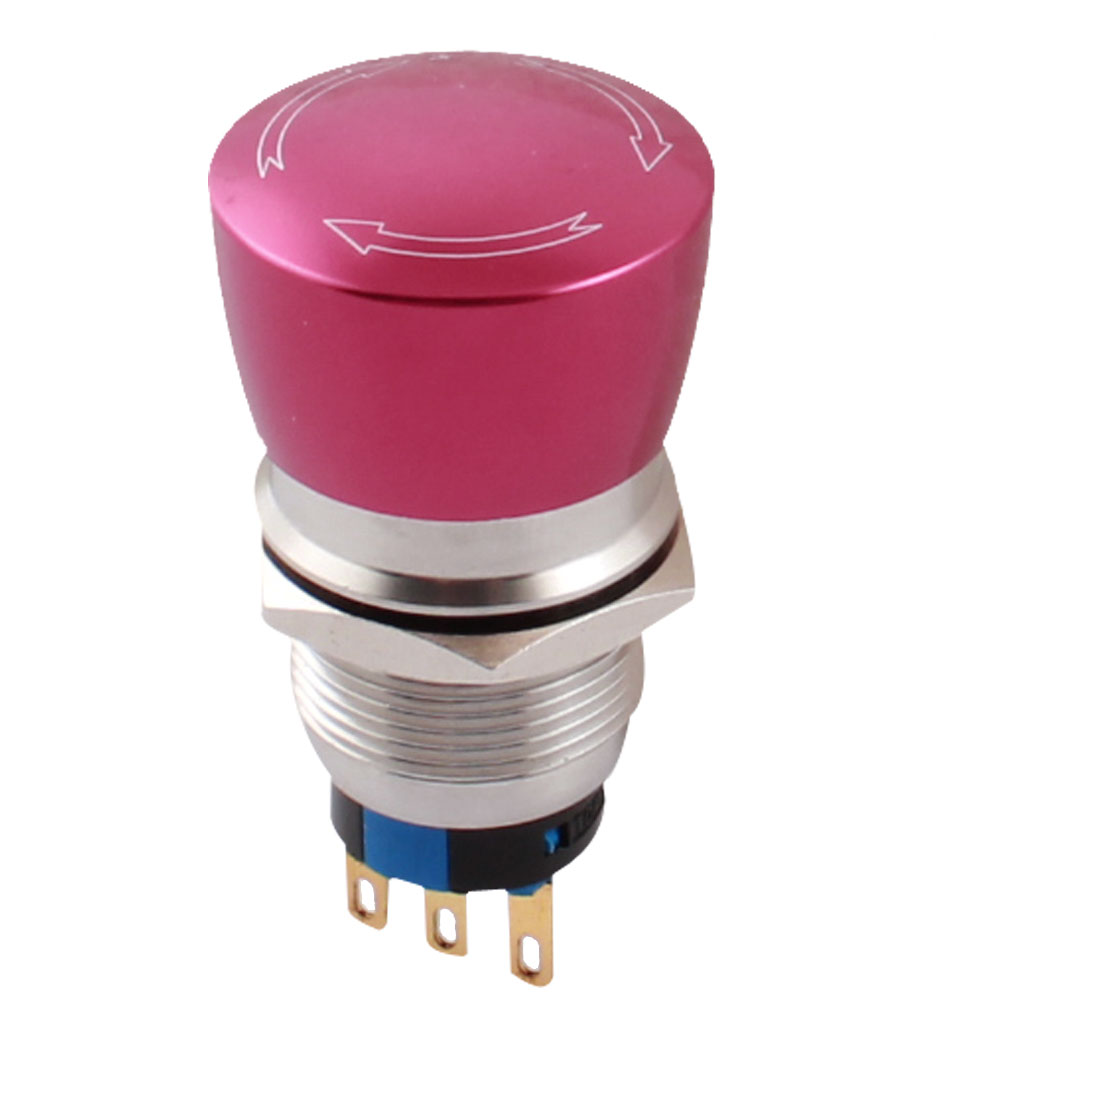 AC 250V 5A 19mm Thread Panel Mount SPDT Locking Rotary Reset Stainless Steel Red Pushbutton Switch